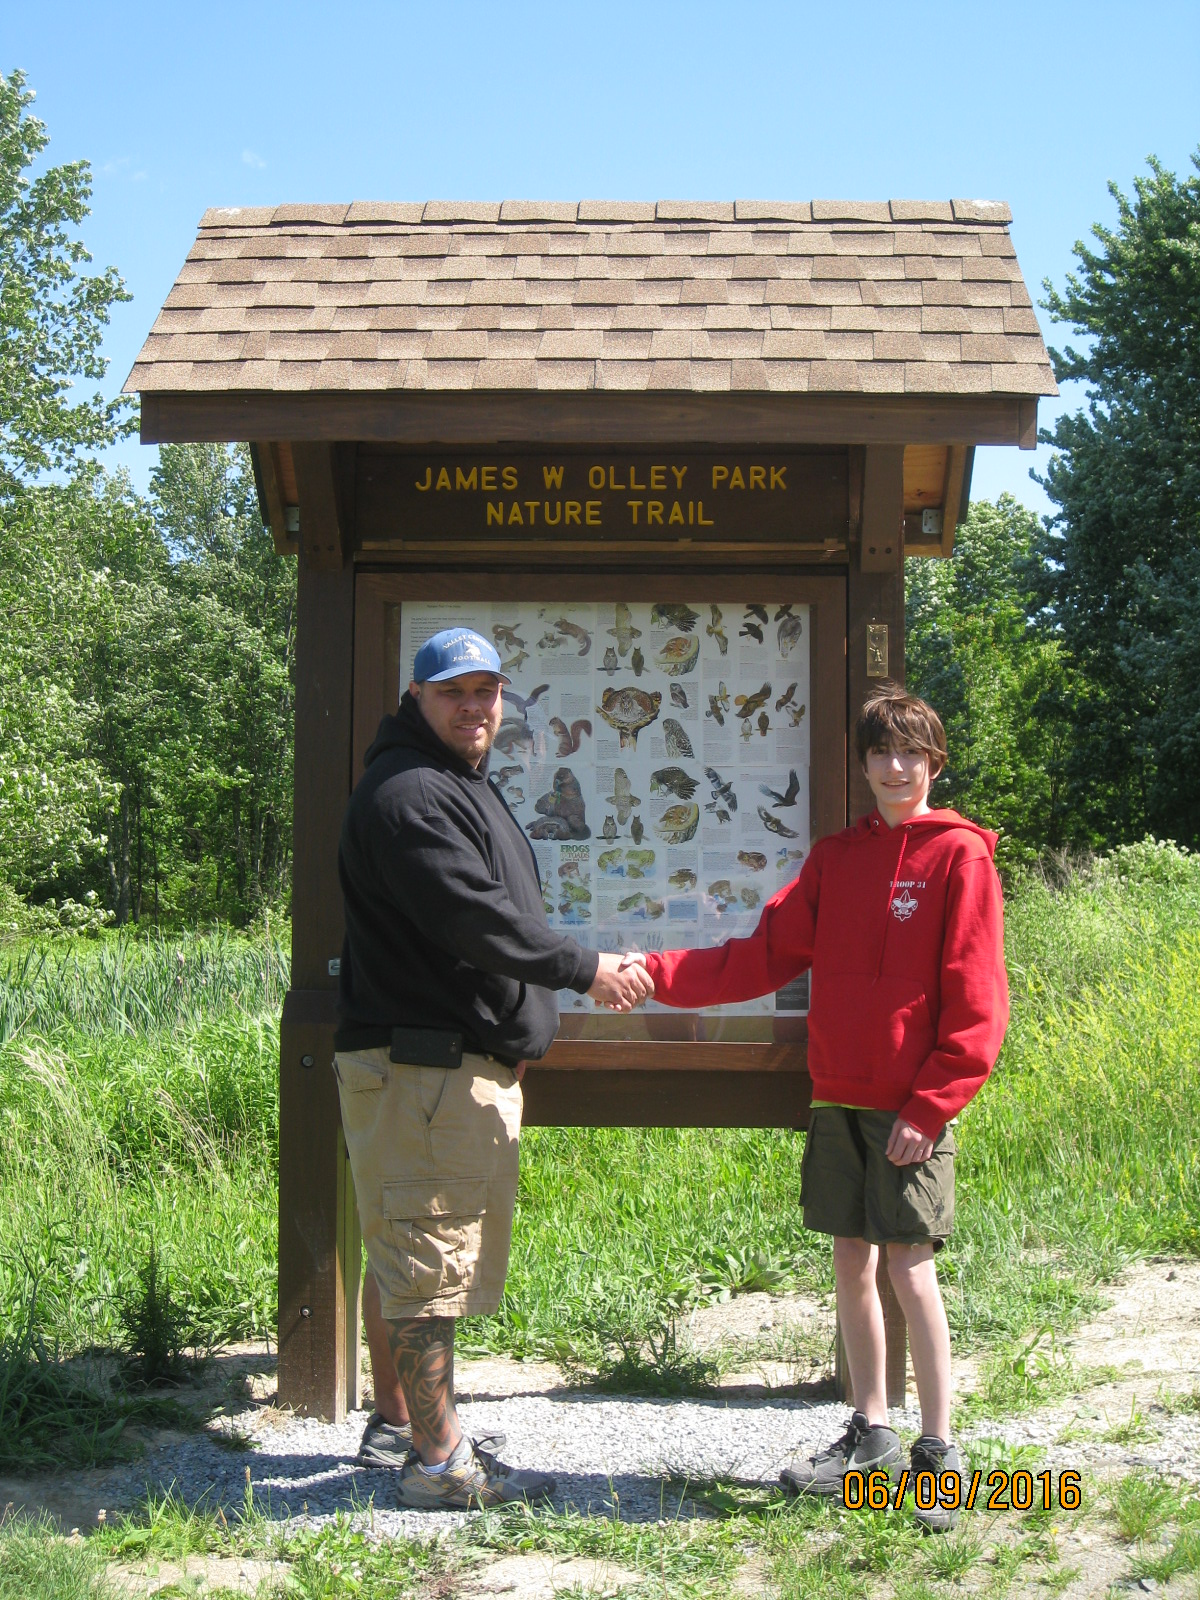 Olley Park nature trail